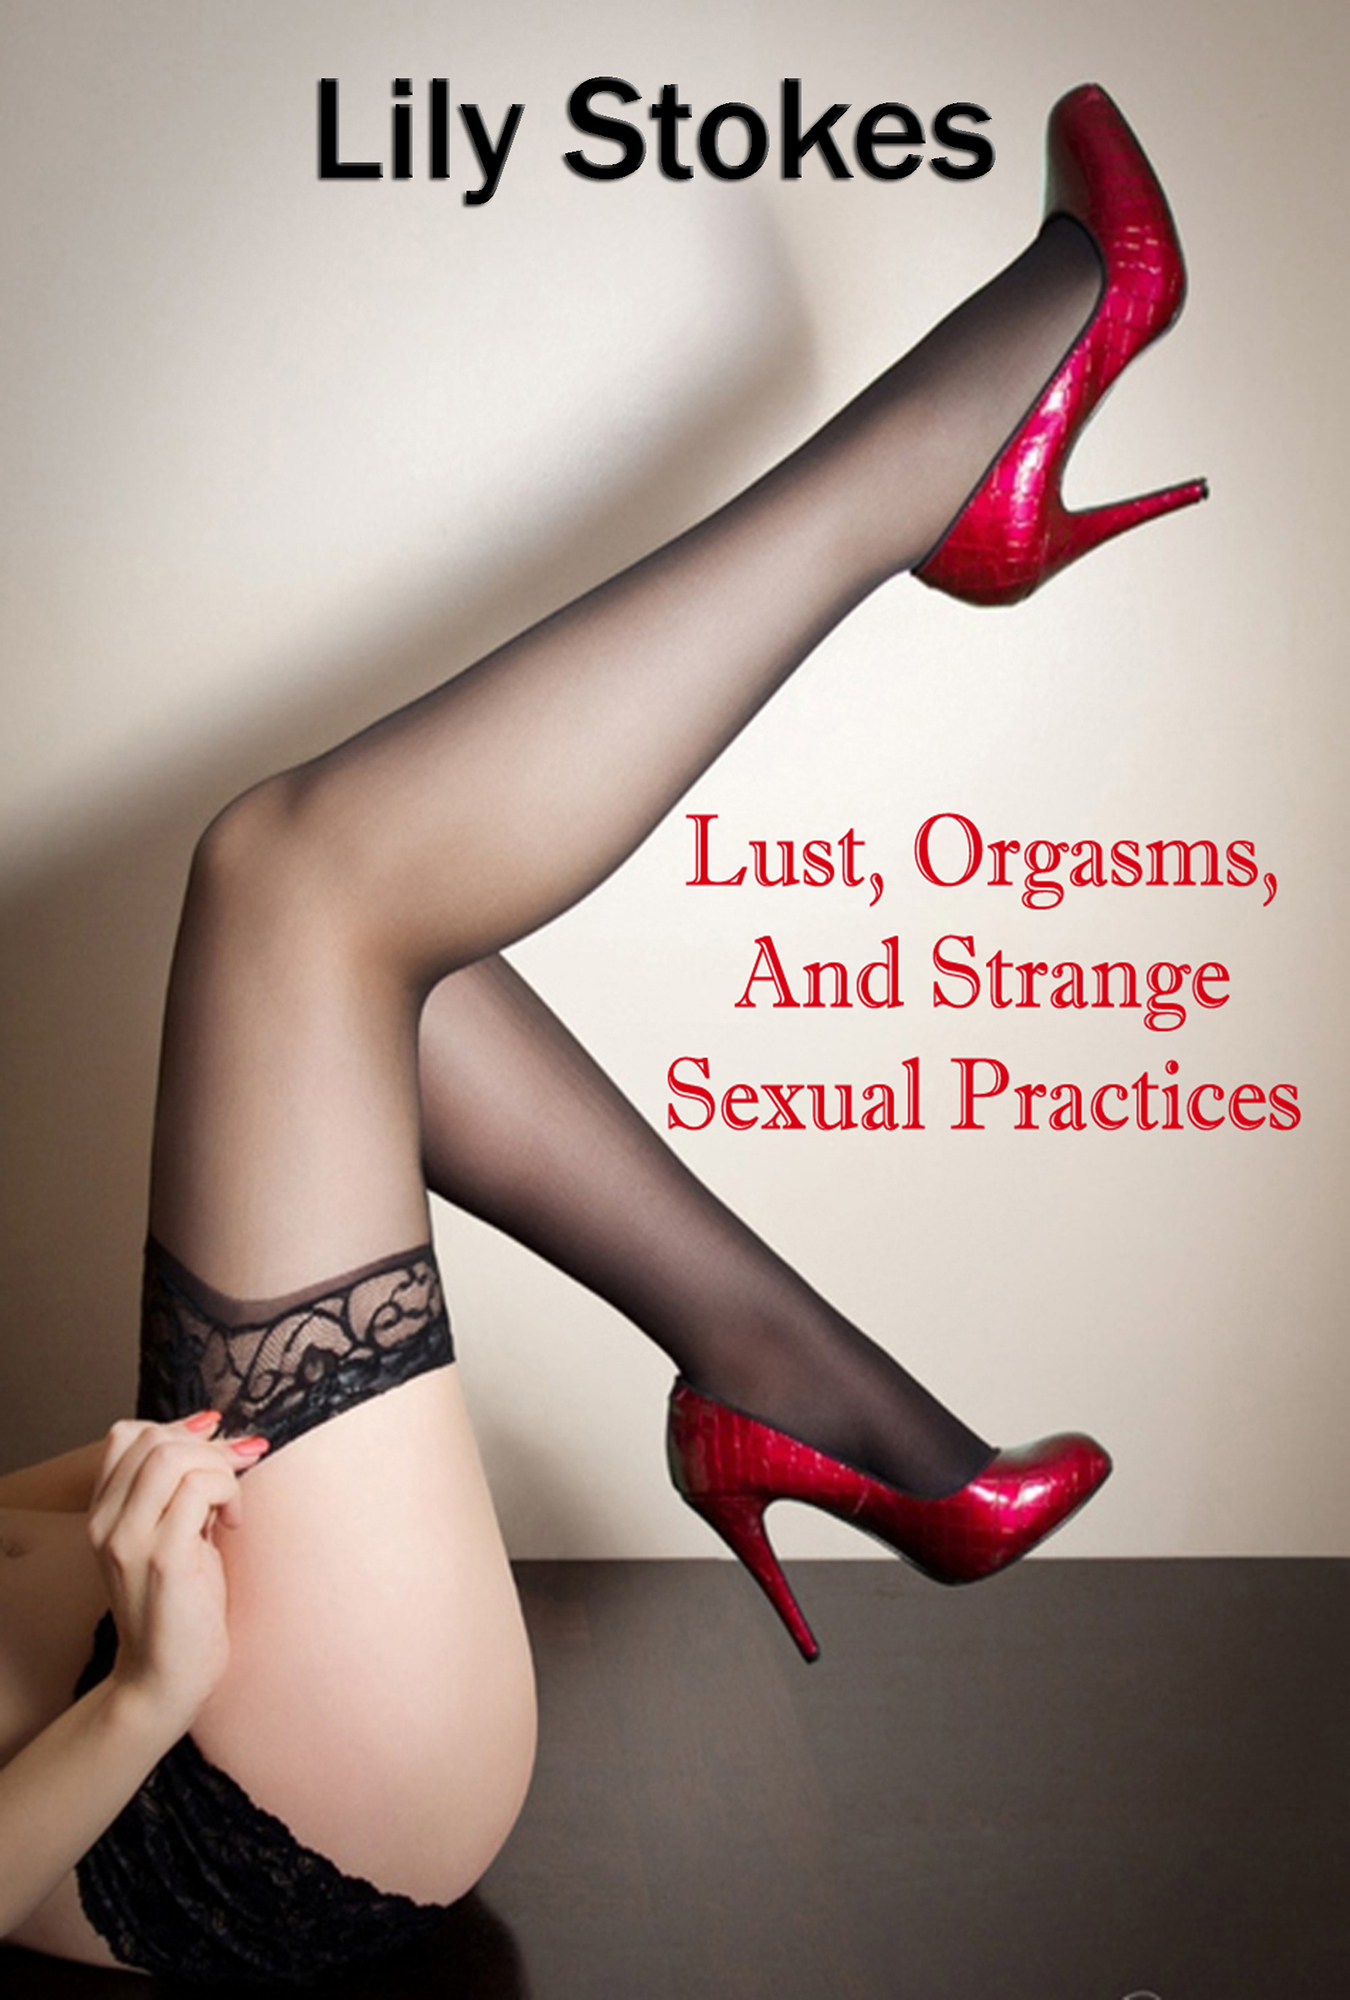 Lust, Orgasms, And Strange Sexual Practices